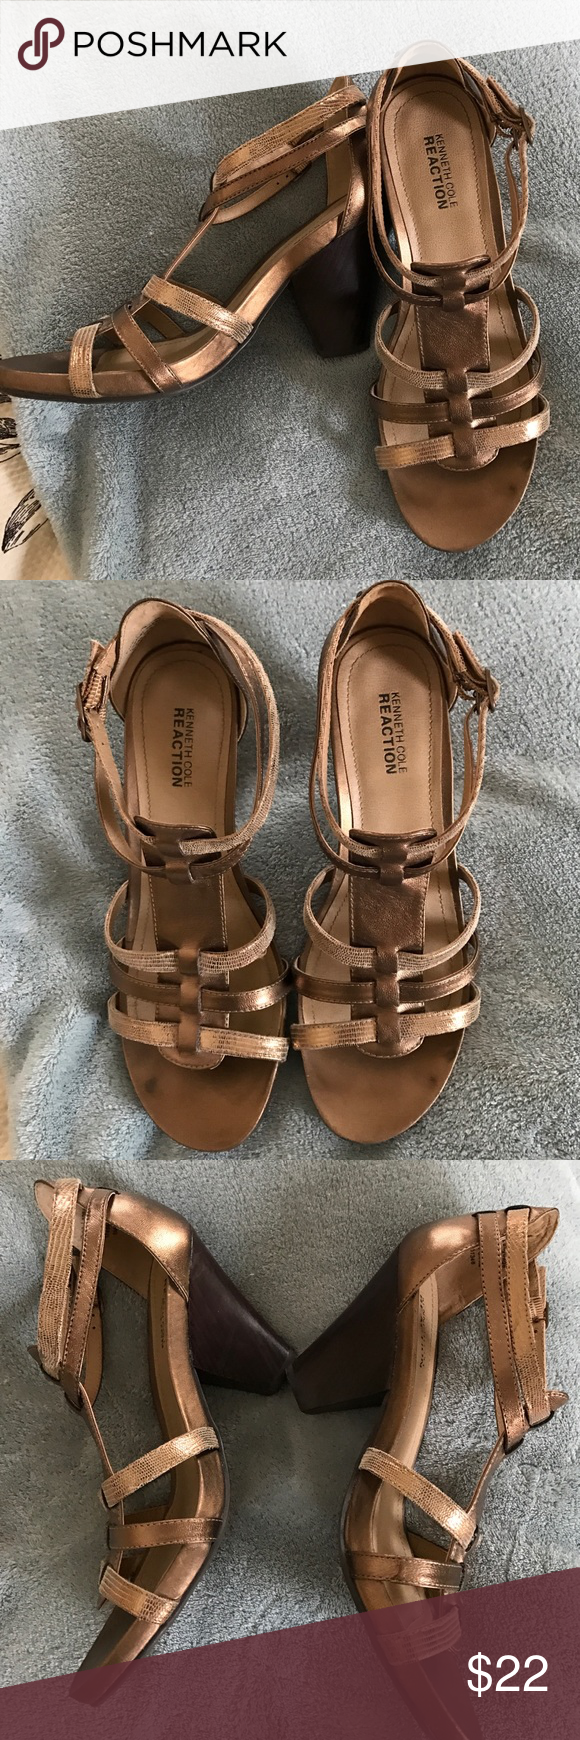 """KENNETH COLE REACTION BRONZE BLOCK HEEL SANDAL Multiple strap sandal by Kenneth Cole only worn about 3 times these have a 3"""" bock heel and leather upper 9medium. Gorgeous bronze tones you can wear with anything Kenneth Cole Reaction Shoes Sandals"""